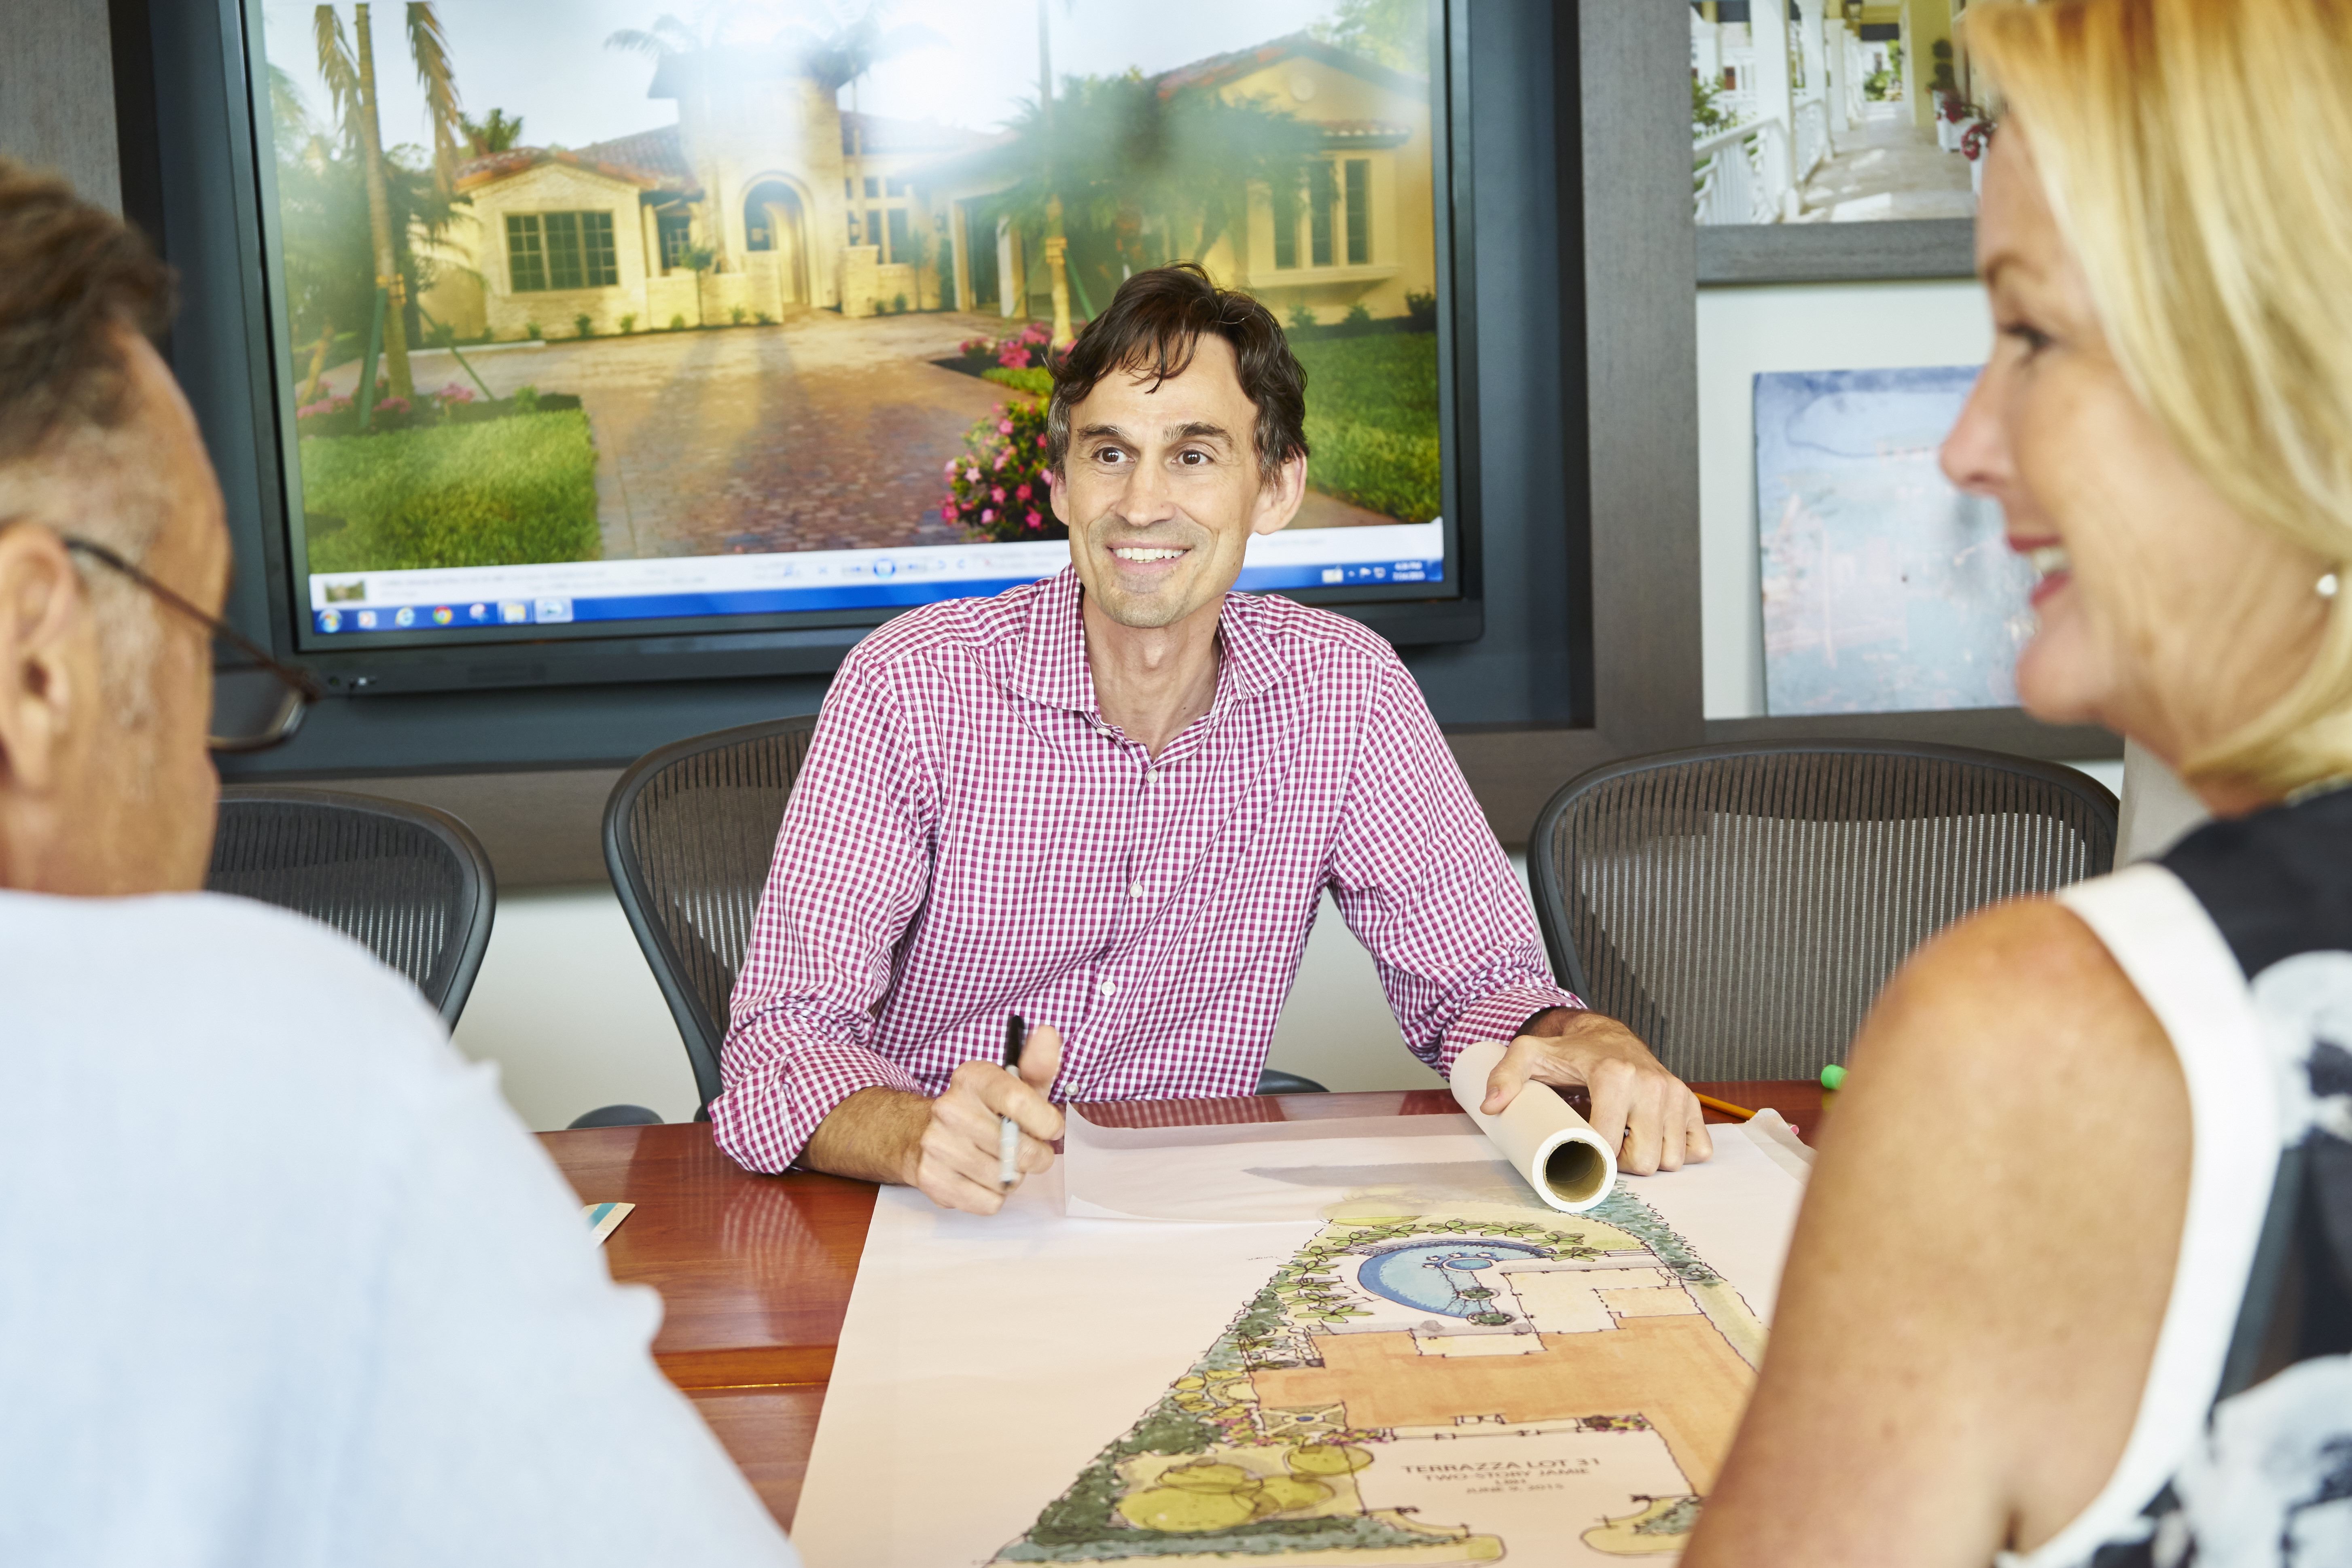 Naples Custom Home Builder London Bay Homes has an in-house team to help guide you.